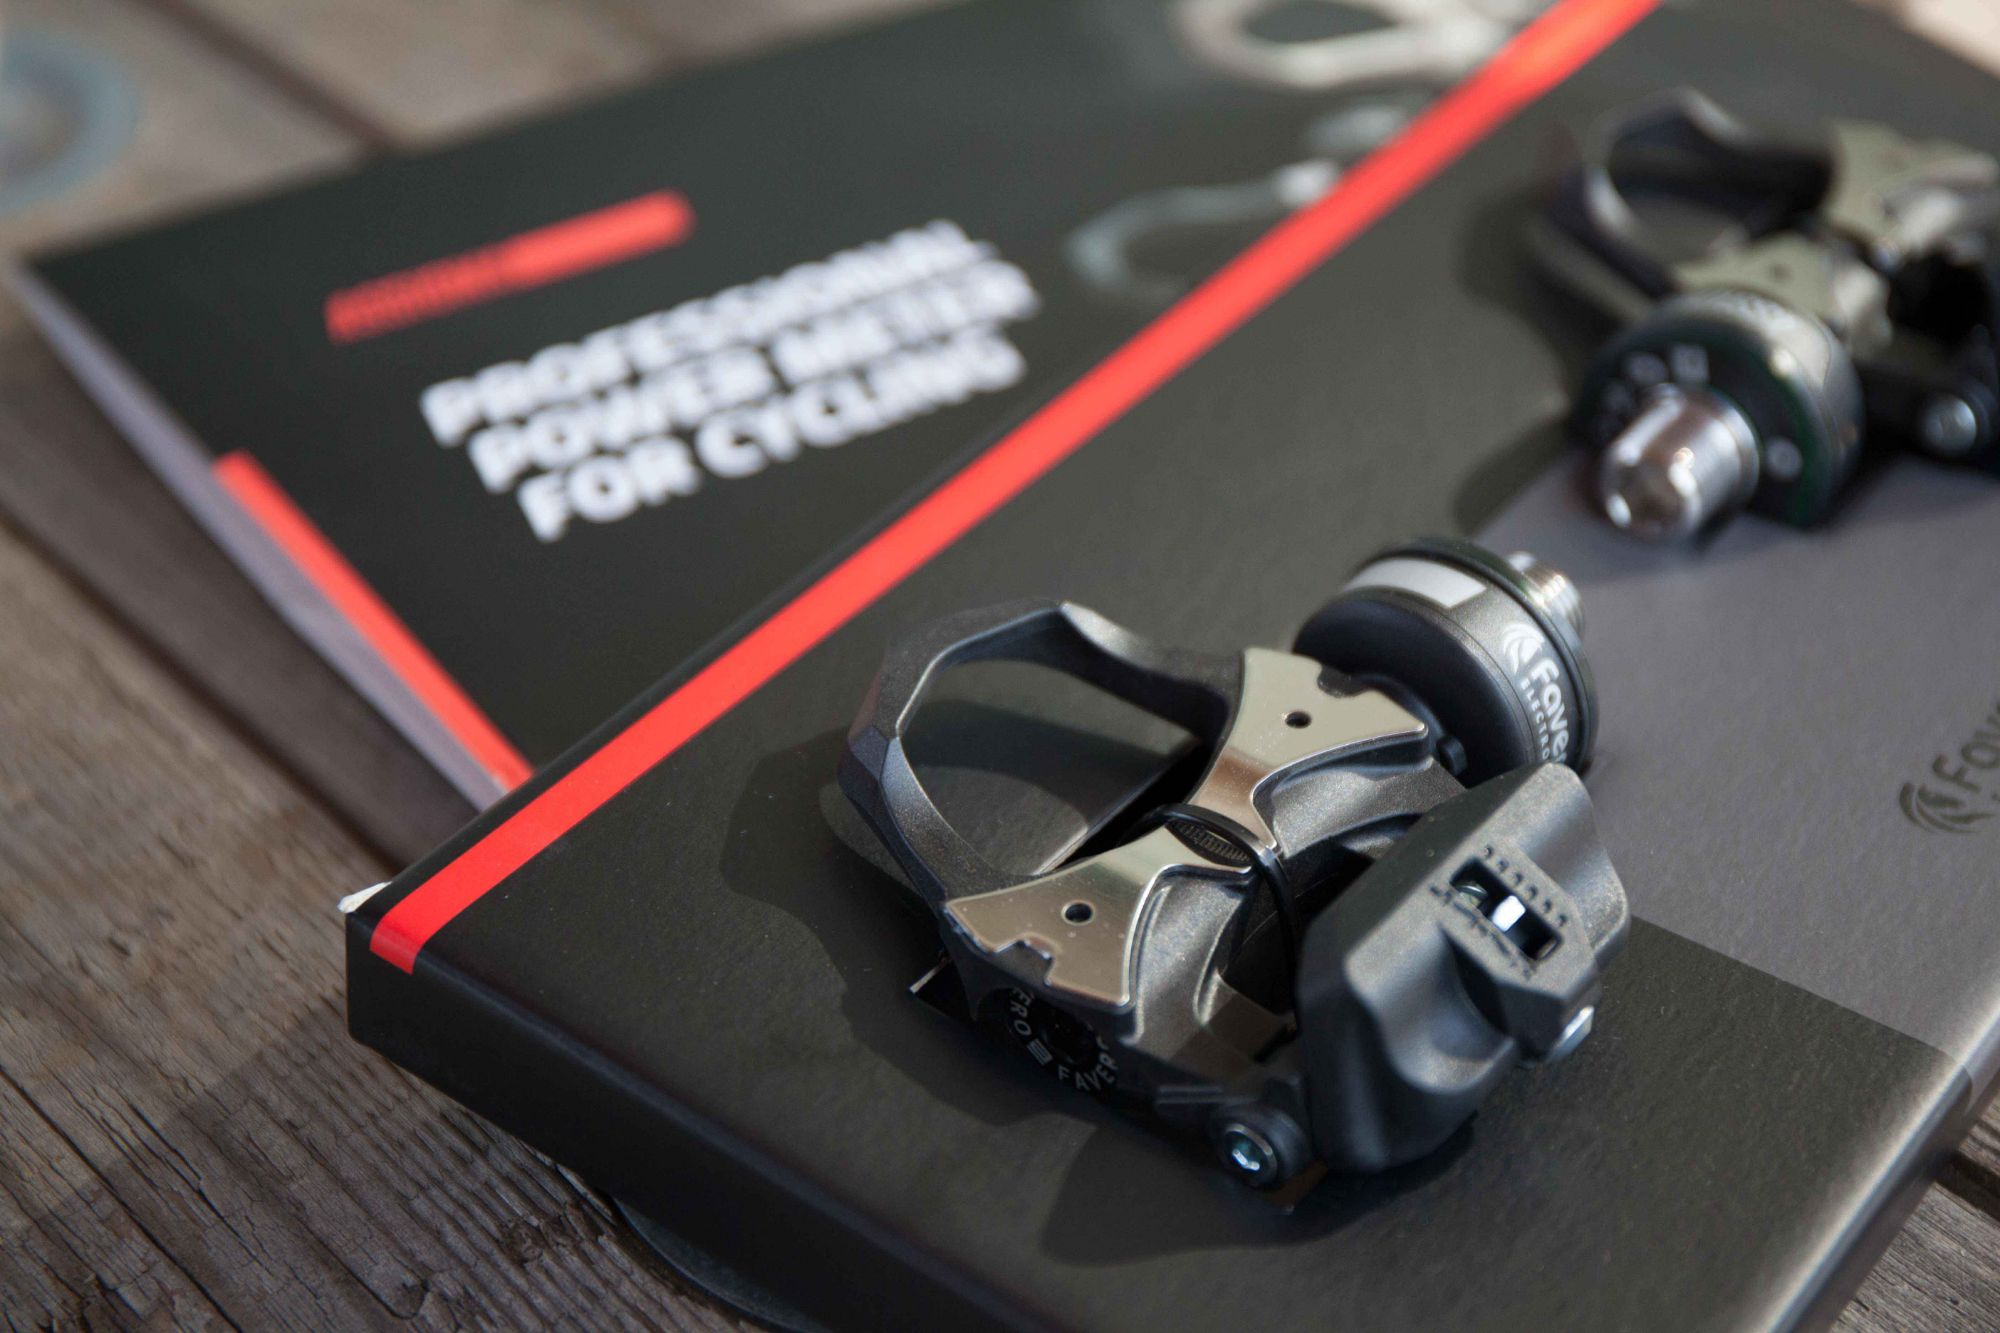 Power Meter Pedals >> Favero Assioma Duo Power Meter Pedals Cicli Corsa Free Eu Shipping